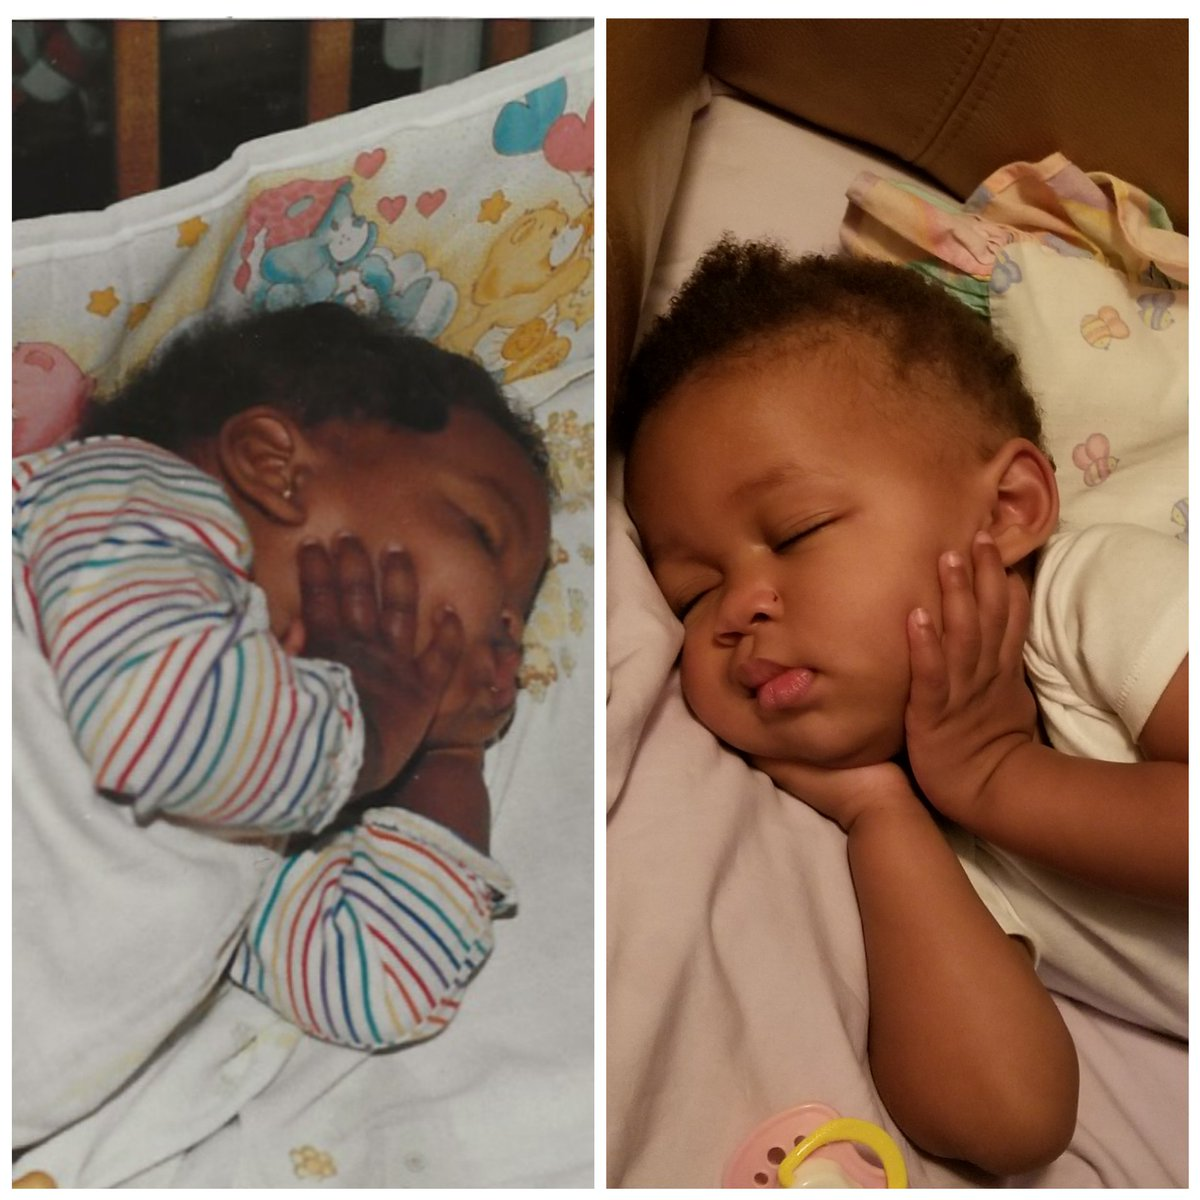 Replying to @ConsciousFilth: My dad just emailed a baby picture of me and it reminded me of a picture of my daughter.